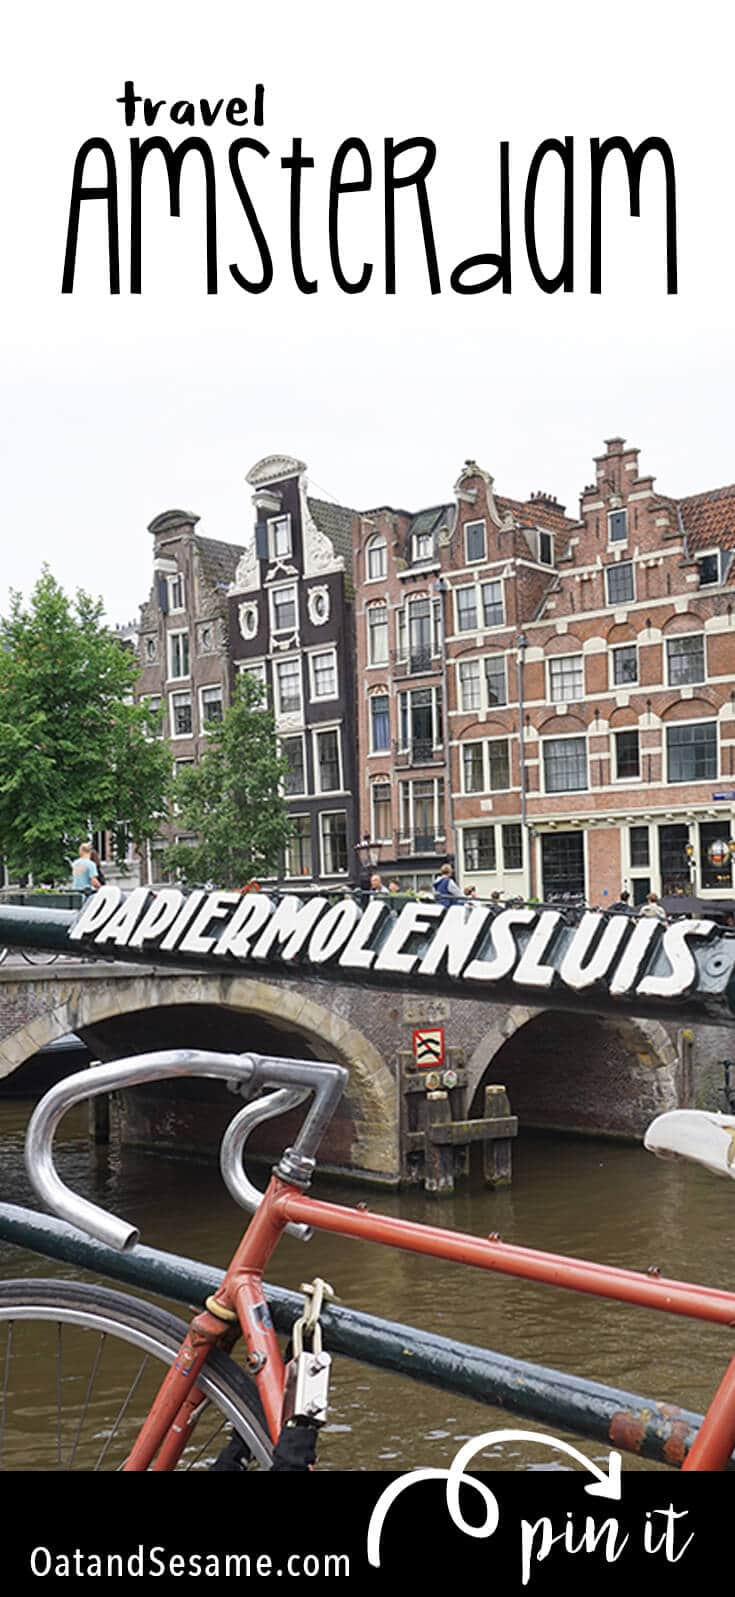 Bikes. Canals. Windmills. Nature. Art. Flowers. Shopping. Breweries. Chocolate. Amsterdam is vibrant, yet laid back. The Netherlands packs A LOT into a tiny country! | TRAVEL | AMSTERDAM | NETHERLANDS | OatandSesame.com